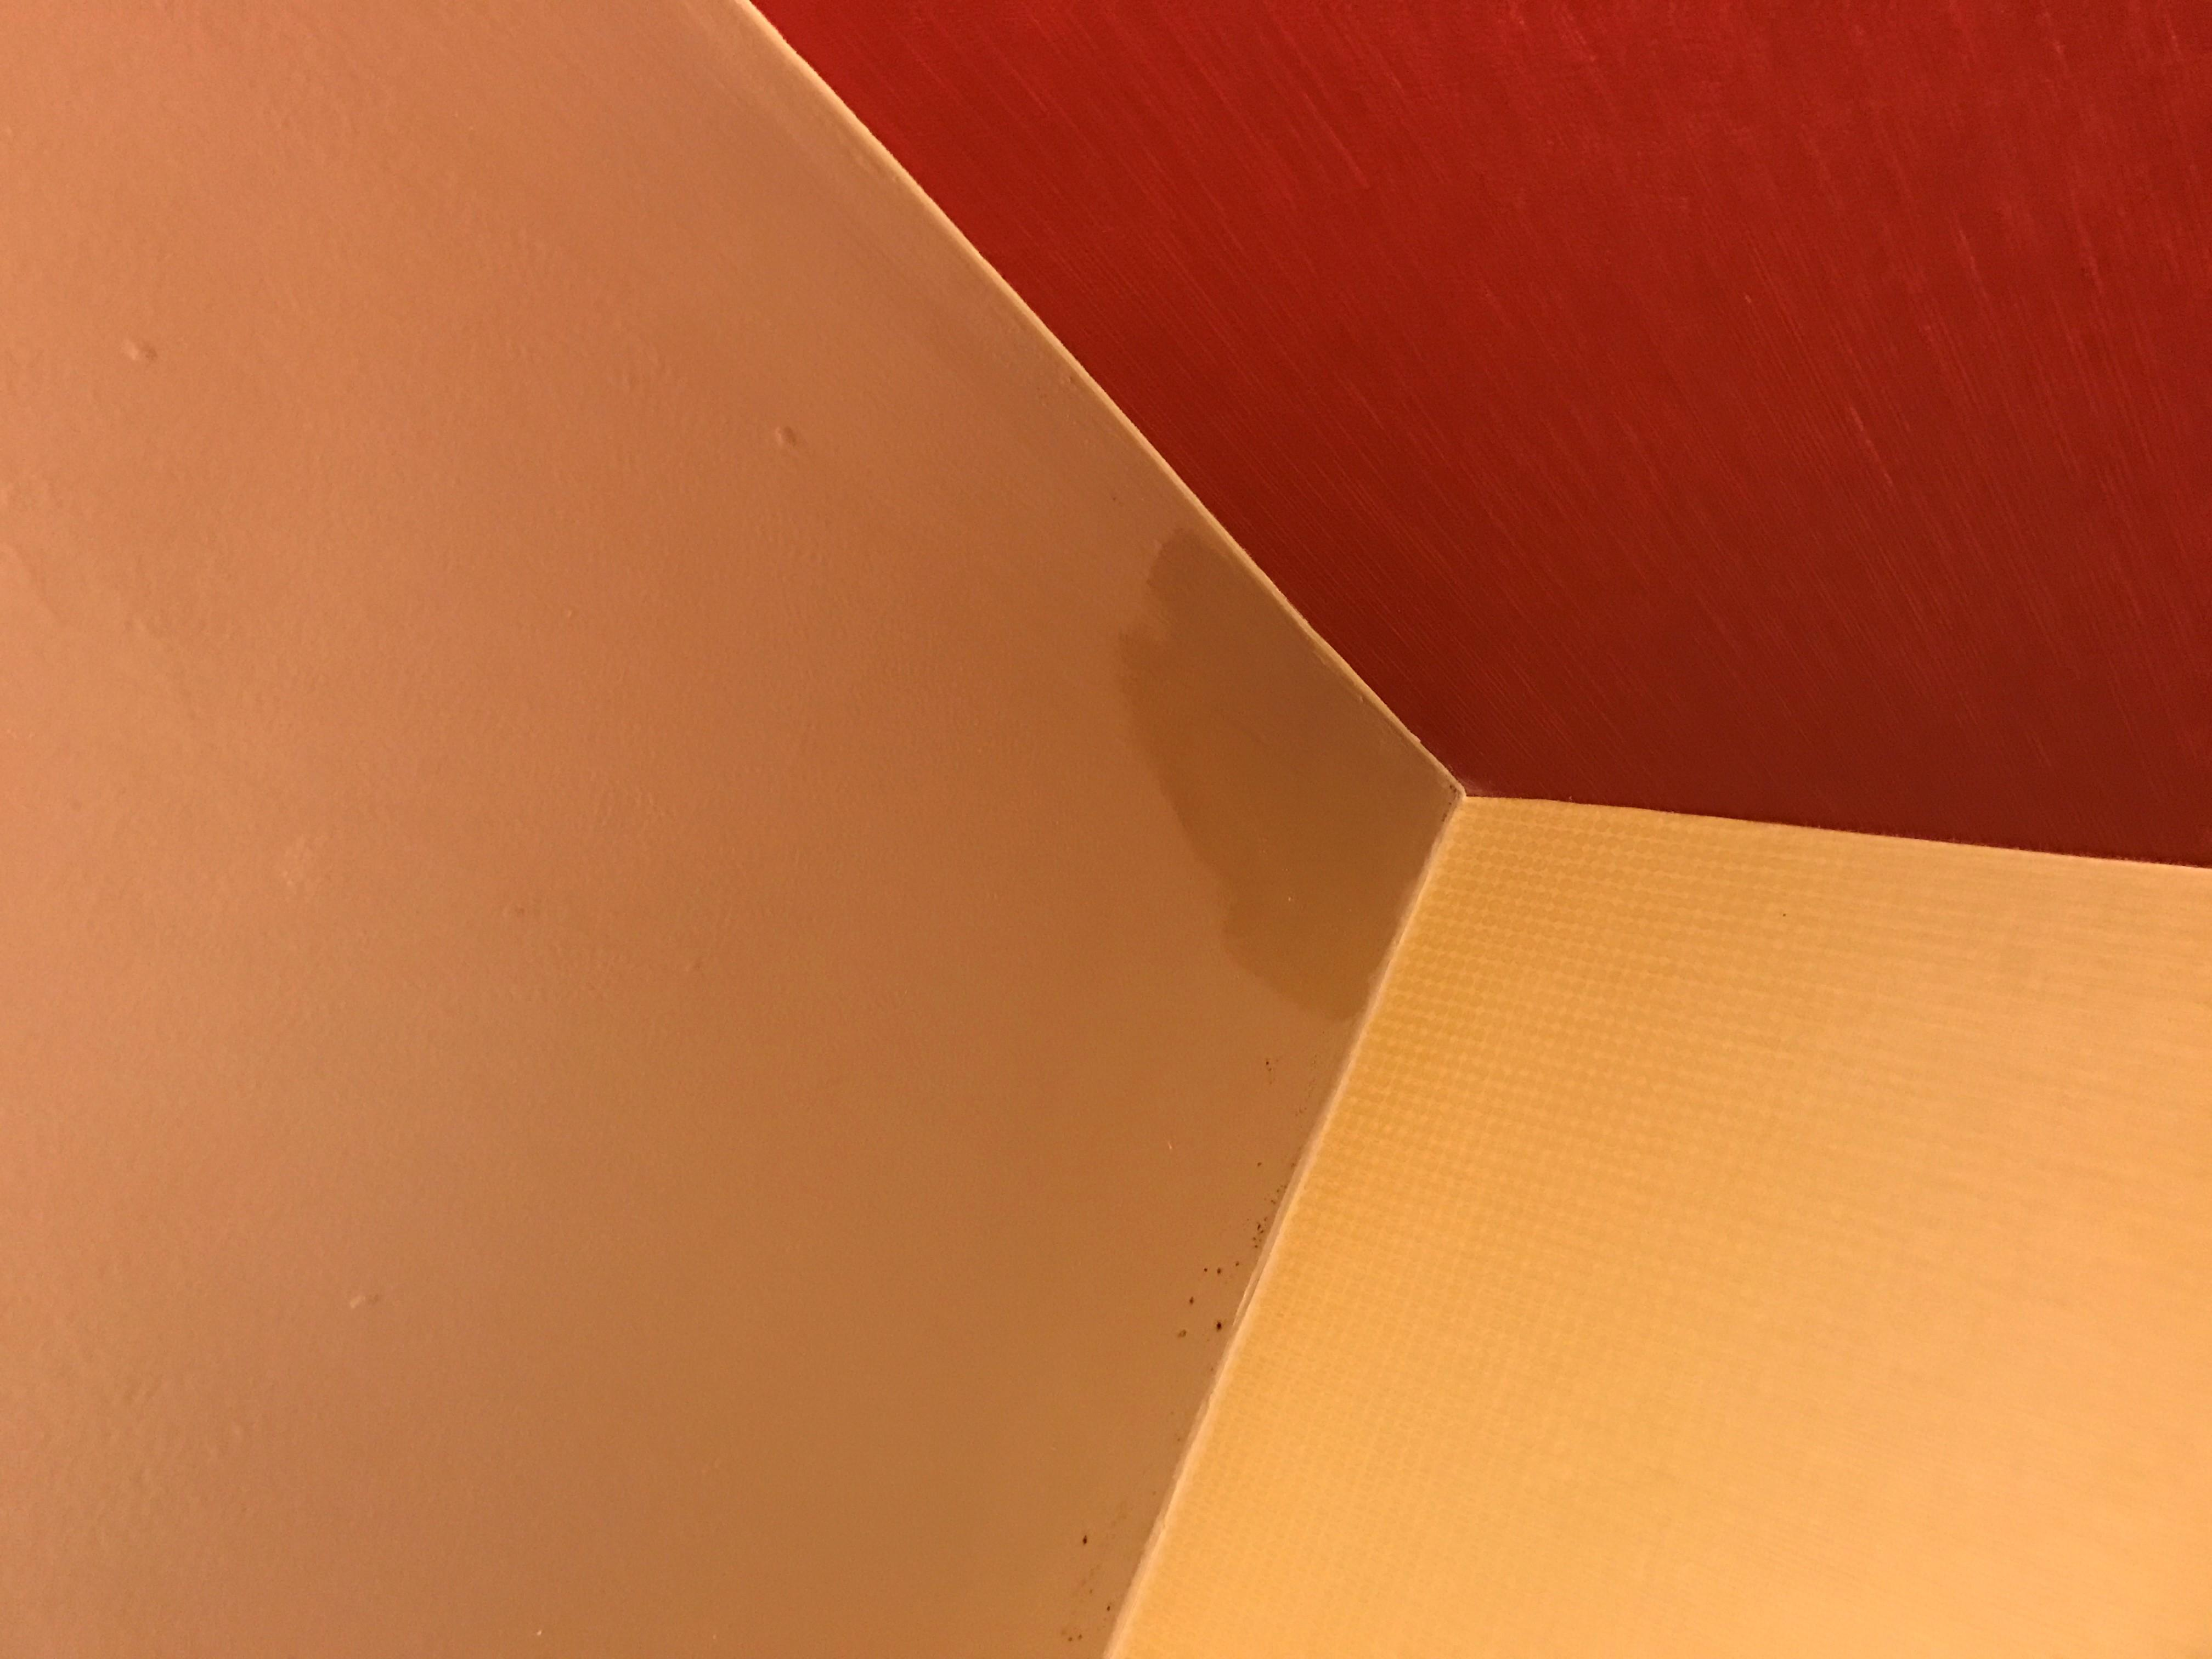 leak on the ceiing the red is the wall parer